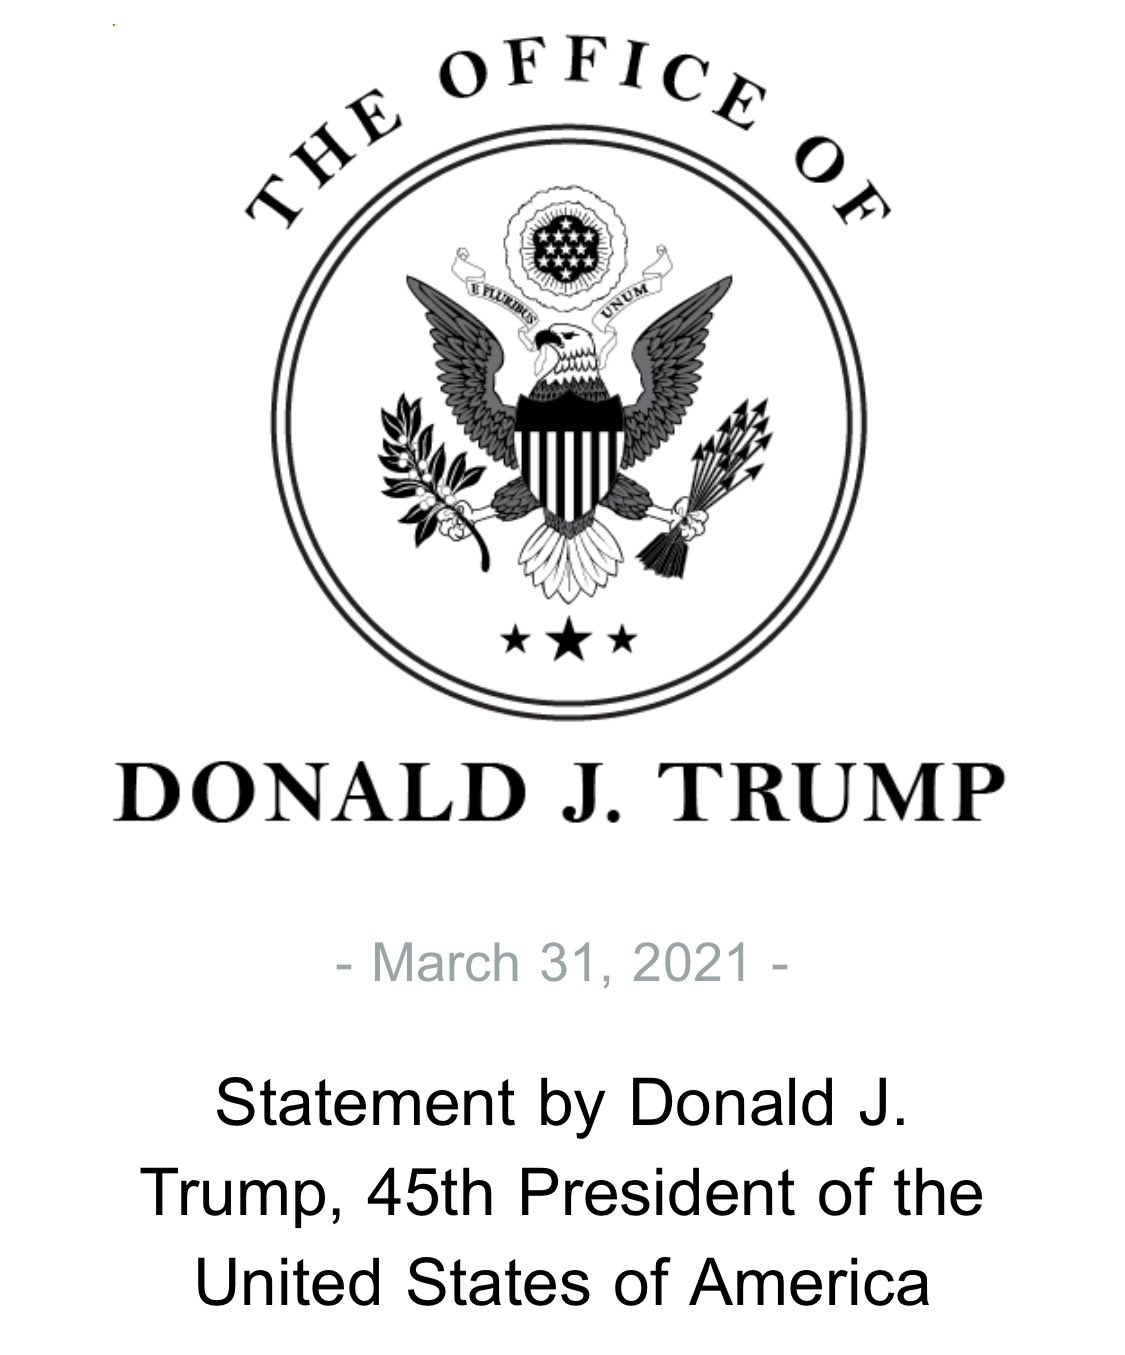 Statement by President Donald J. Trump on March 31, 2021